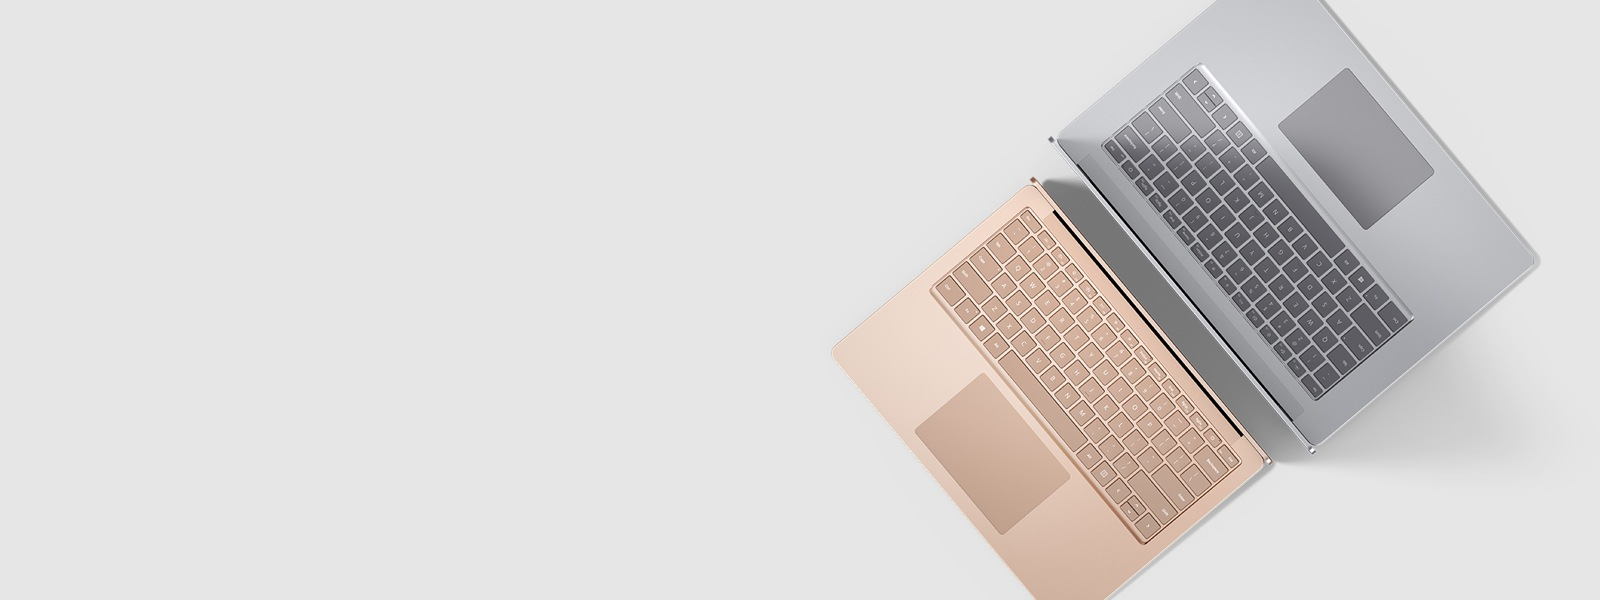 Surface Laptop 3 in Sandstone and Platinum